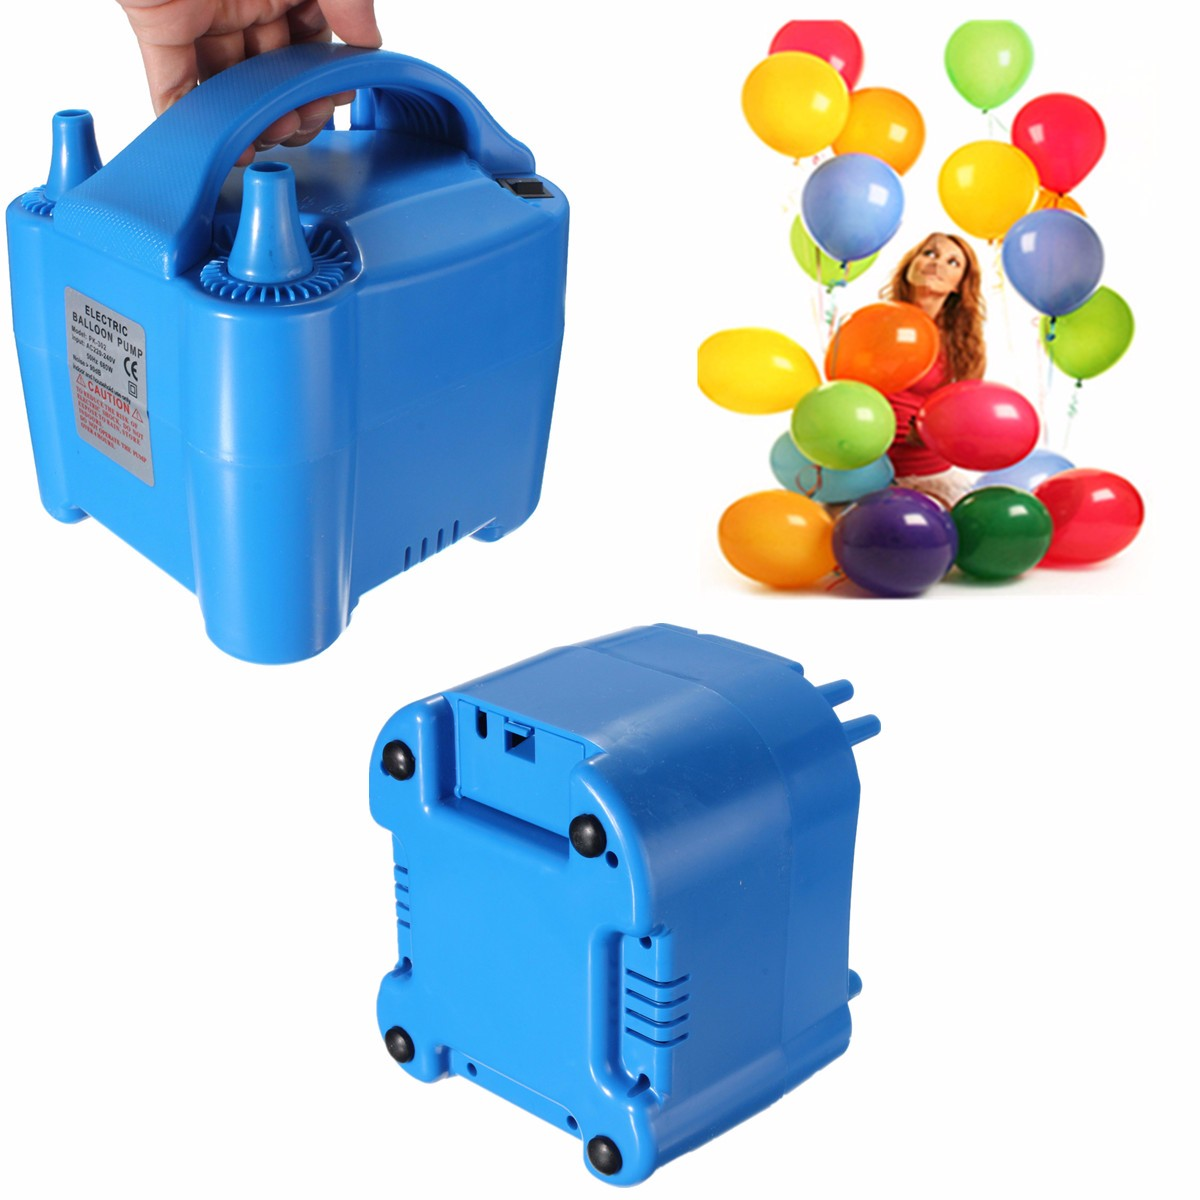 MTGATHER Portable Electric Balloon Inflator Pump Air Blower 2 Nozzle High Power Blue/Red/Green Color random